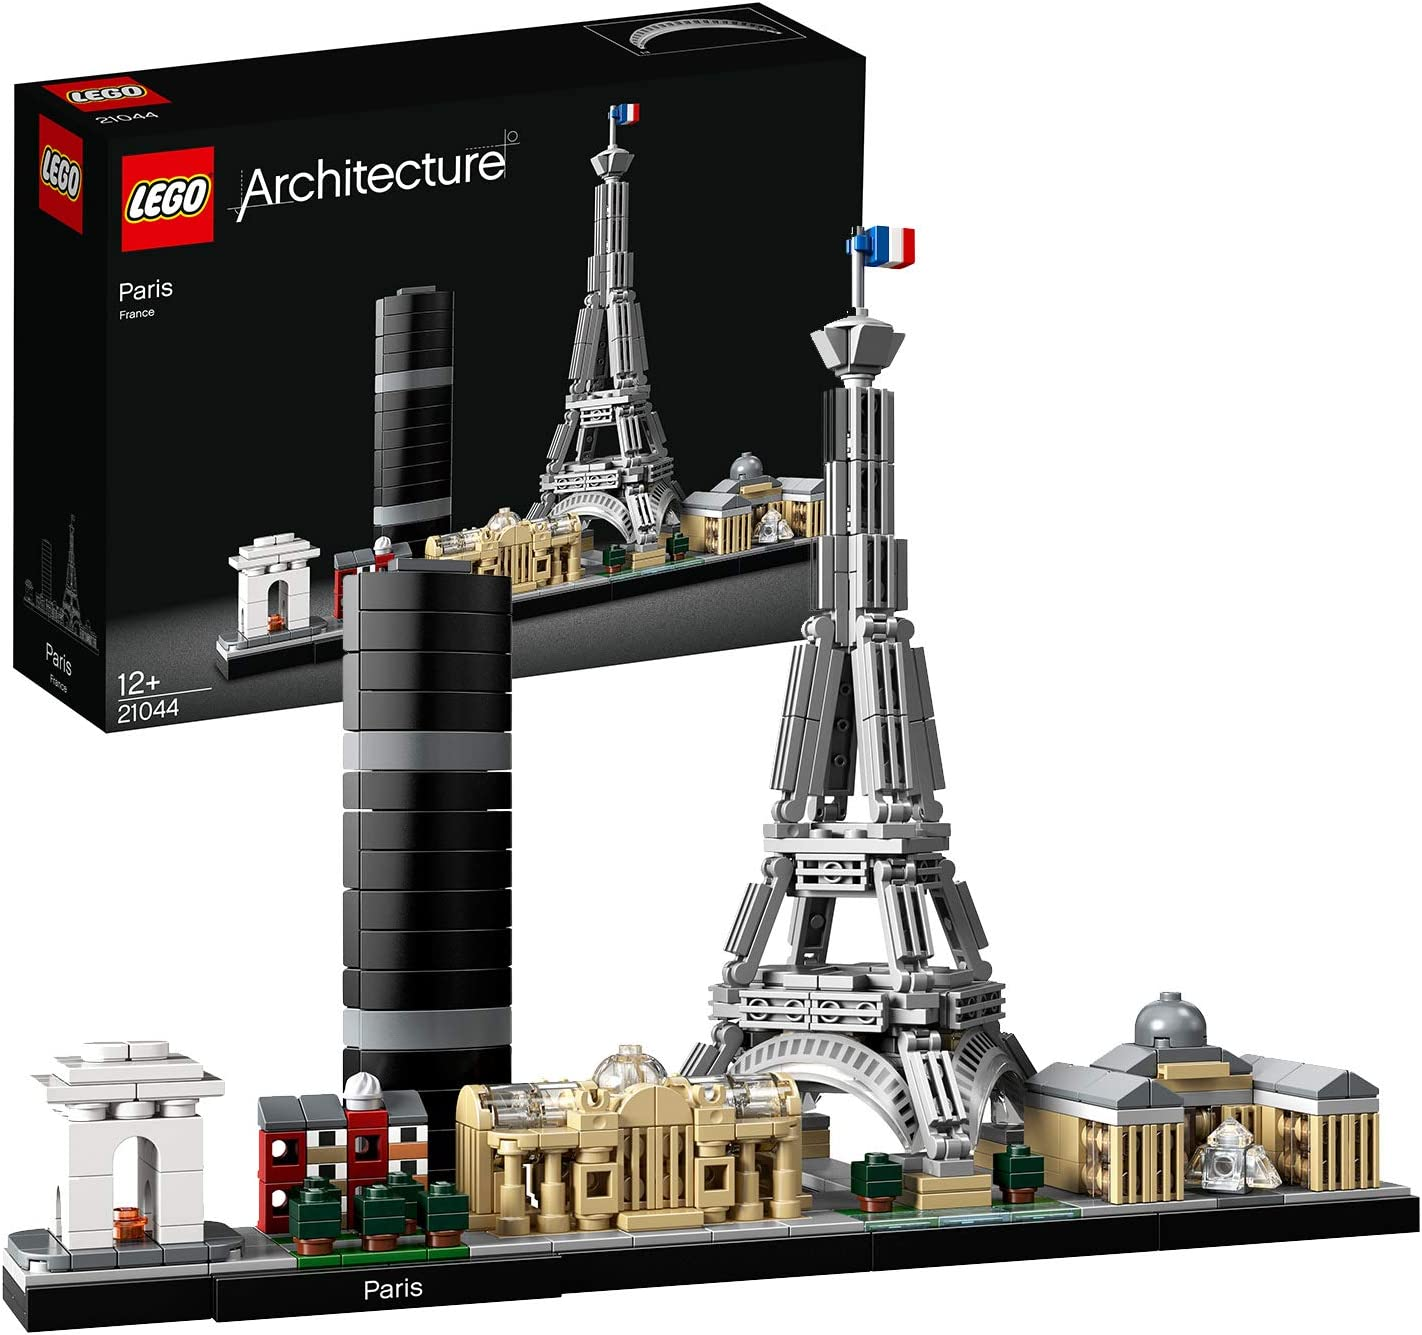 Amazon Prime - LEGO 21044 Architecture Paris (Skyline-Kollektion) für nur 34,85€